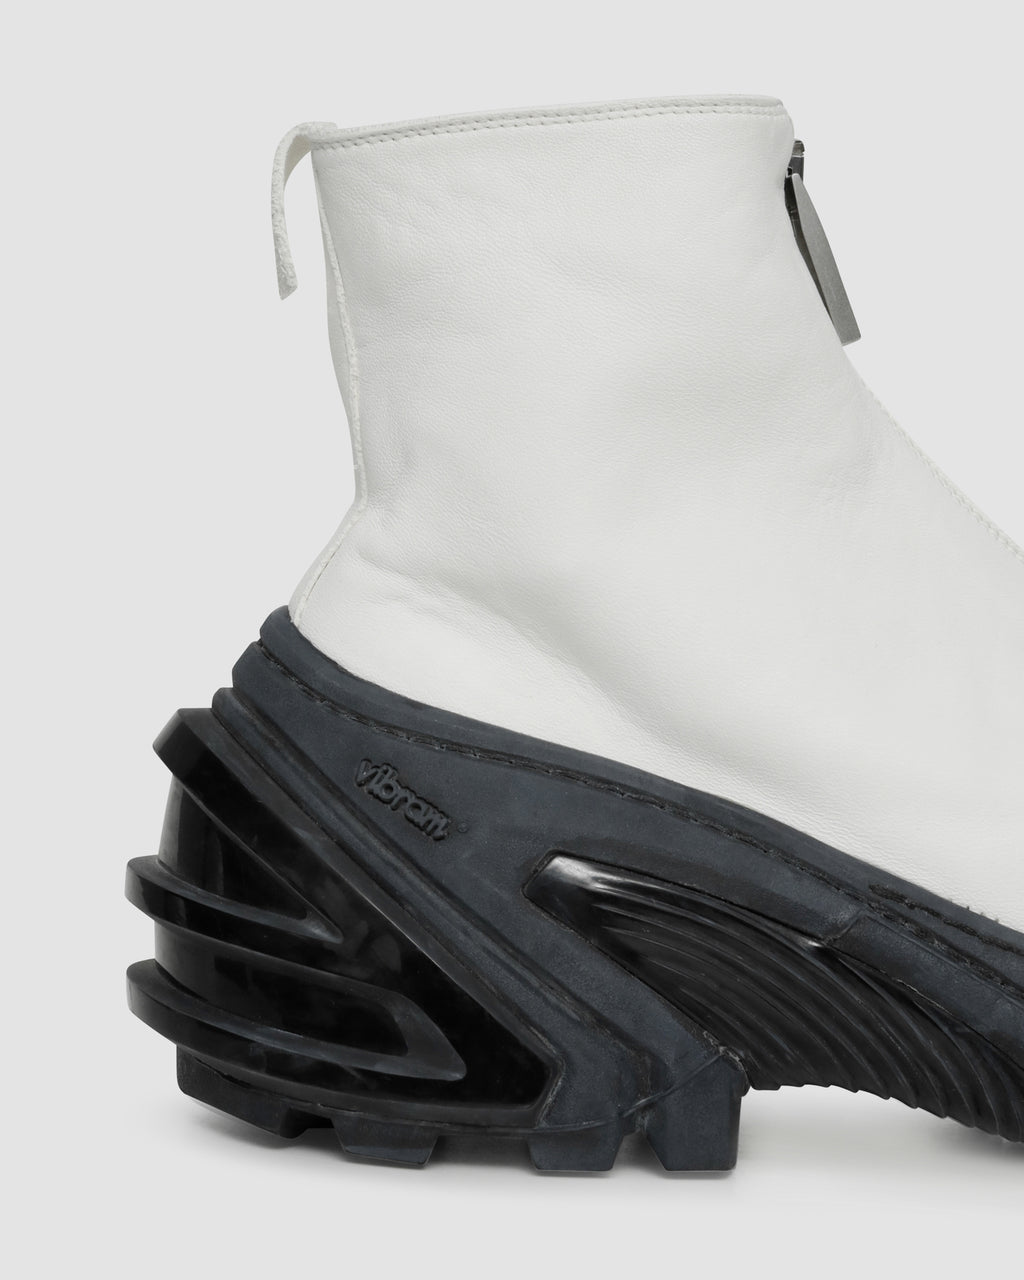 1017 ALYX 9SM | GUIDI ALYX FRONT ZIP BOOT WITH VIBRAM SOLE | Shoe | Google Shopping, Guidi, Man, S20, Shoes, White, Woman